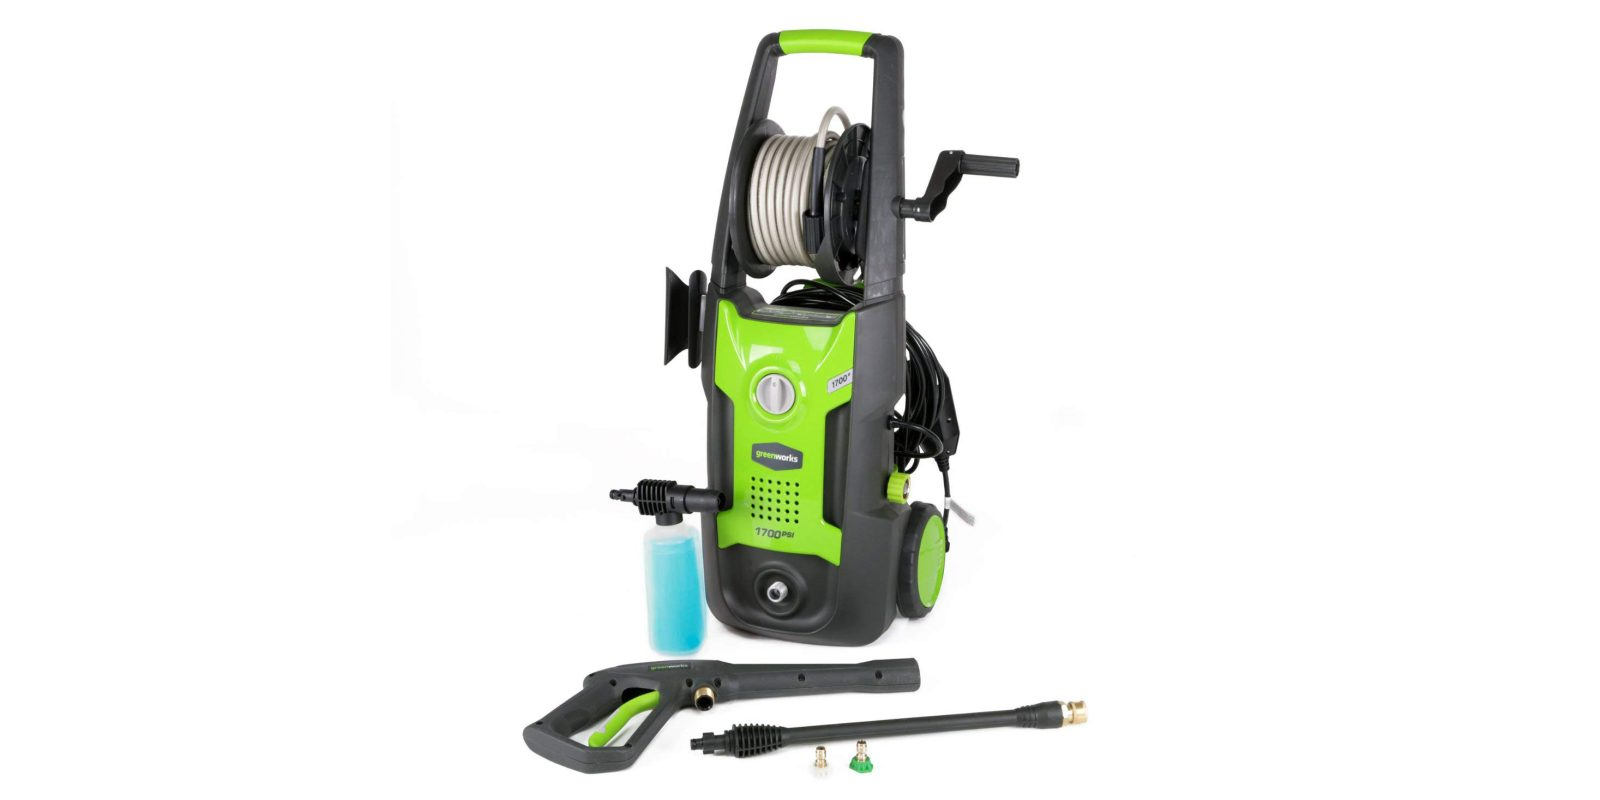 Greenworks 13A Electric Pressure Washer drops to $92 50, more in